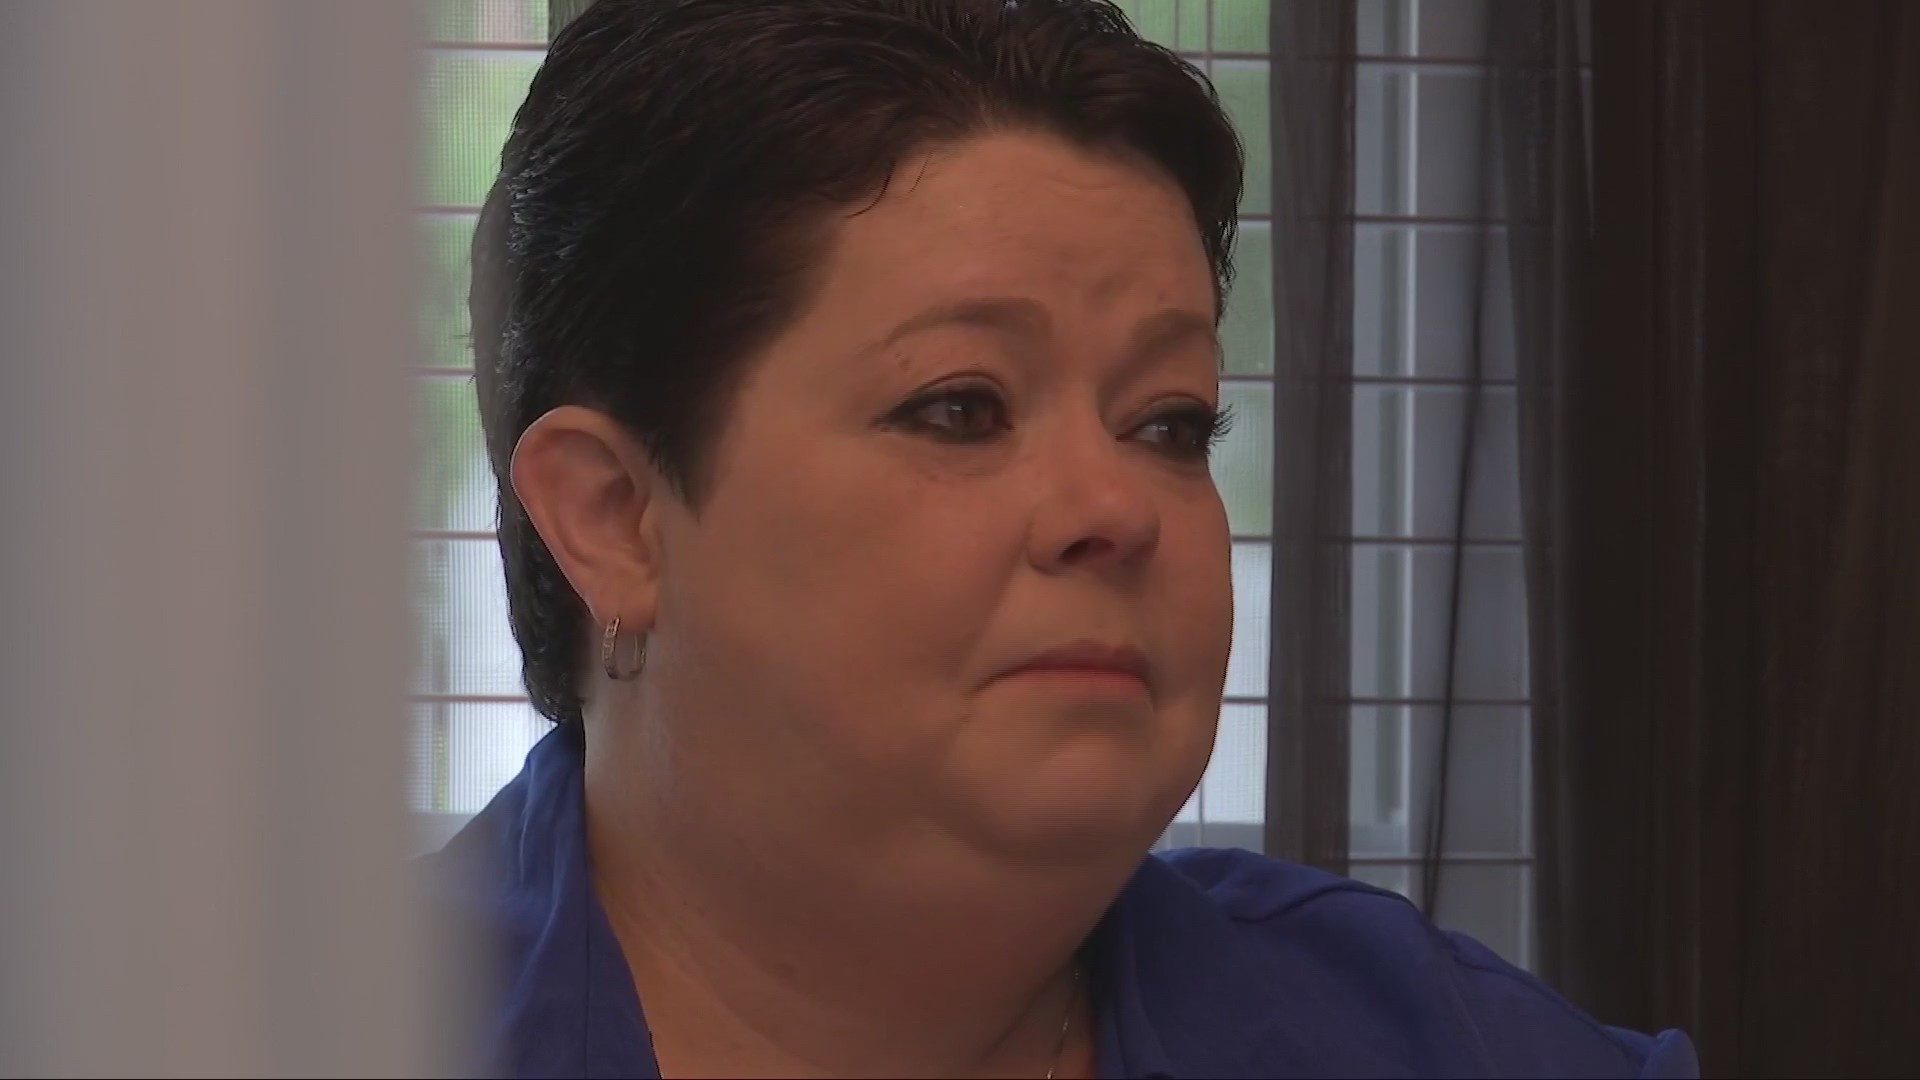 Jackson County mom fights to end bullying in schools